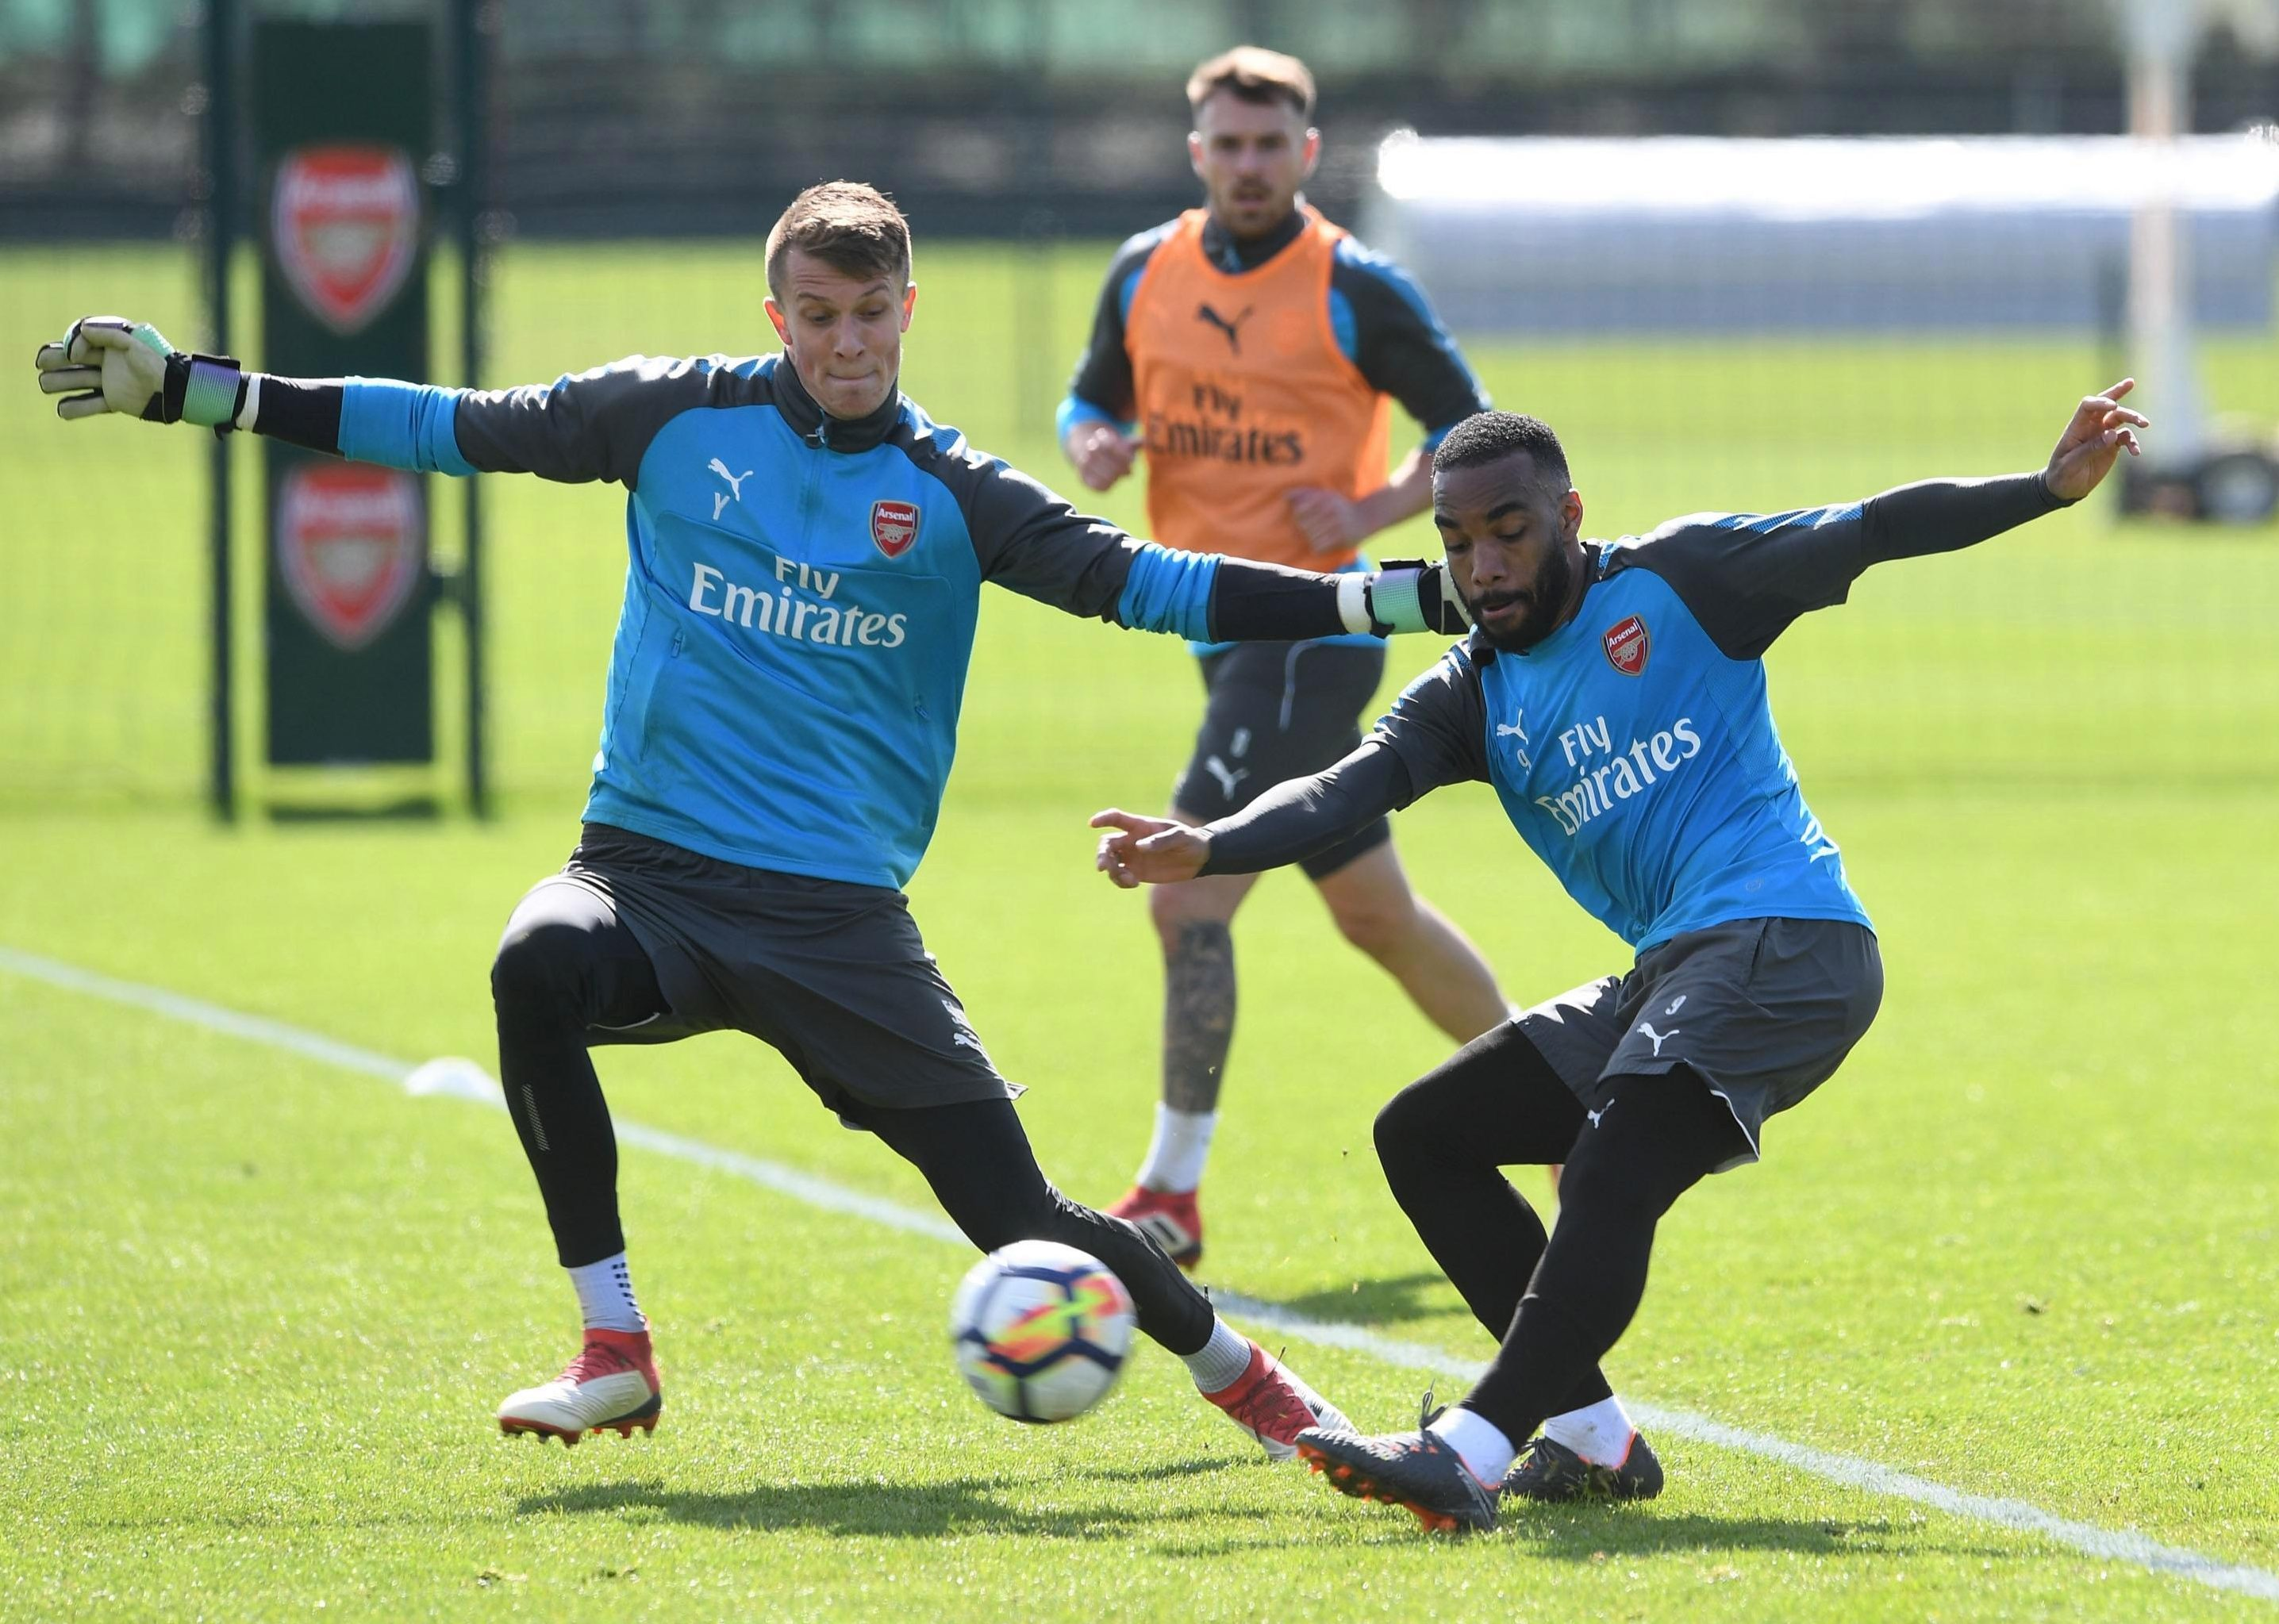 Lacazette has trained well with Arsenal this week and is now in contention to face Stoke